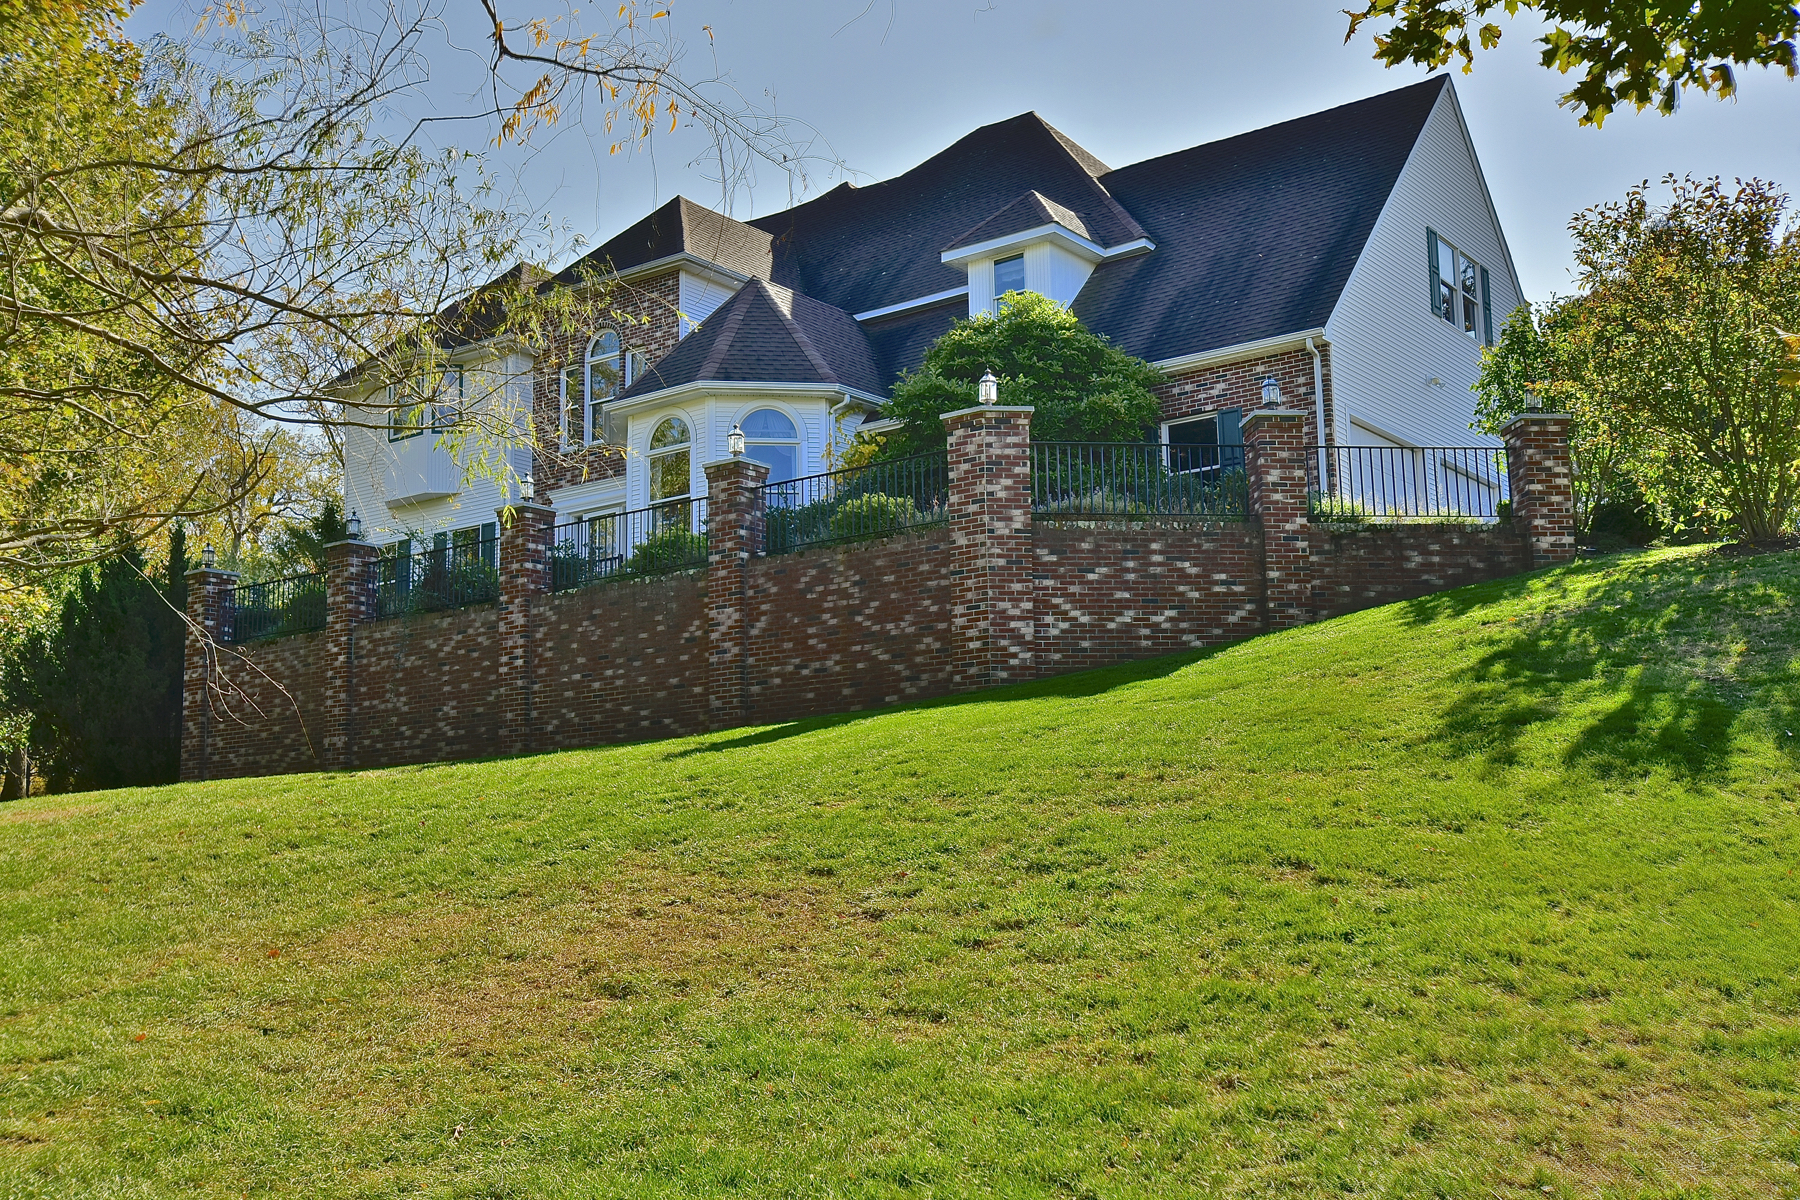 Single Family Home for Sale at Luxuriously Appointed Colonial on Almost 2 Acres 80 Emerald Glen Rd Salem, Connecticut, 06420 United States